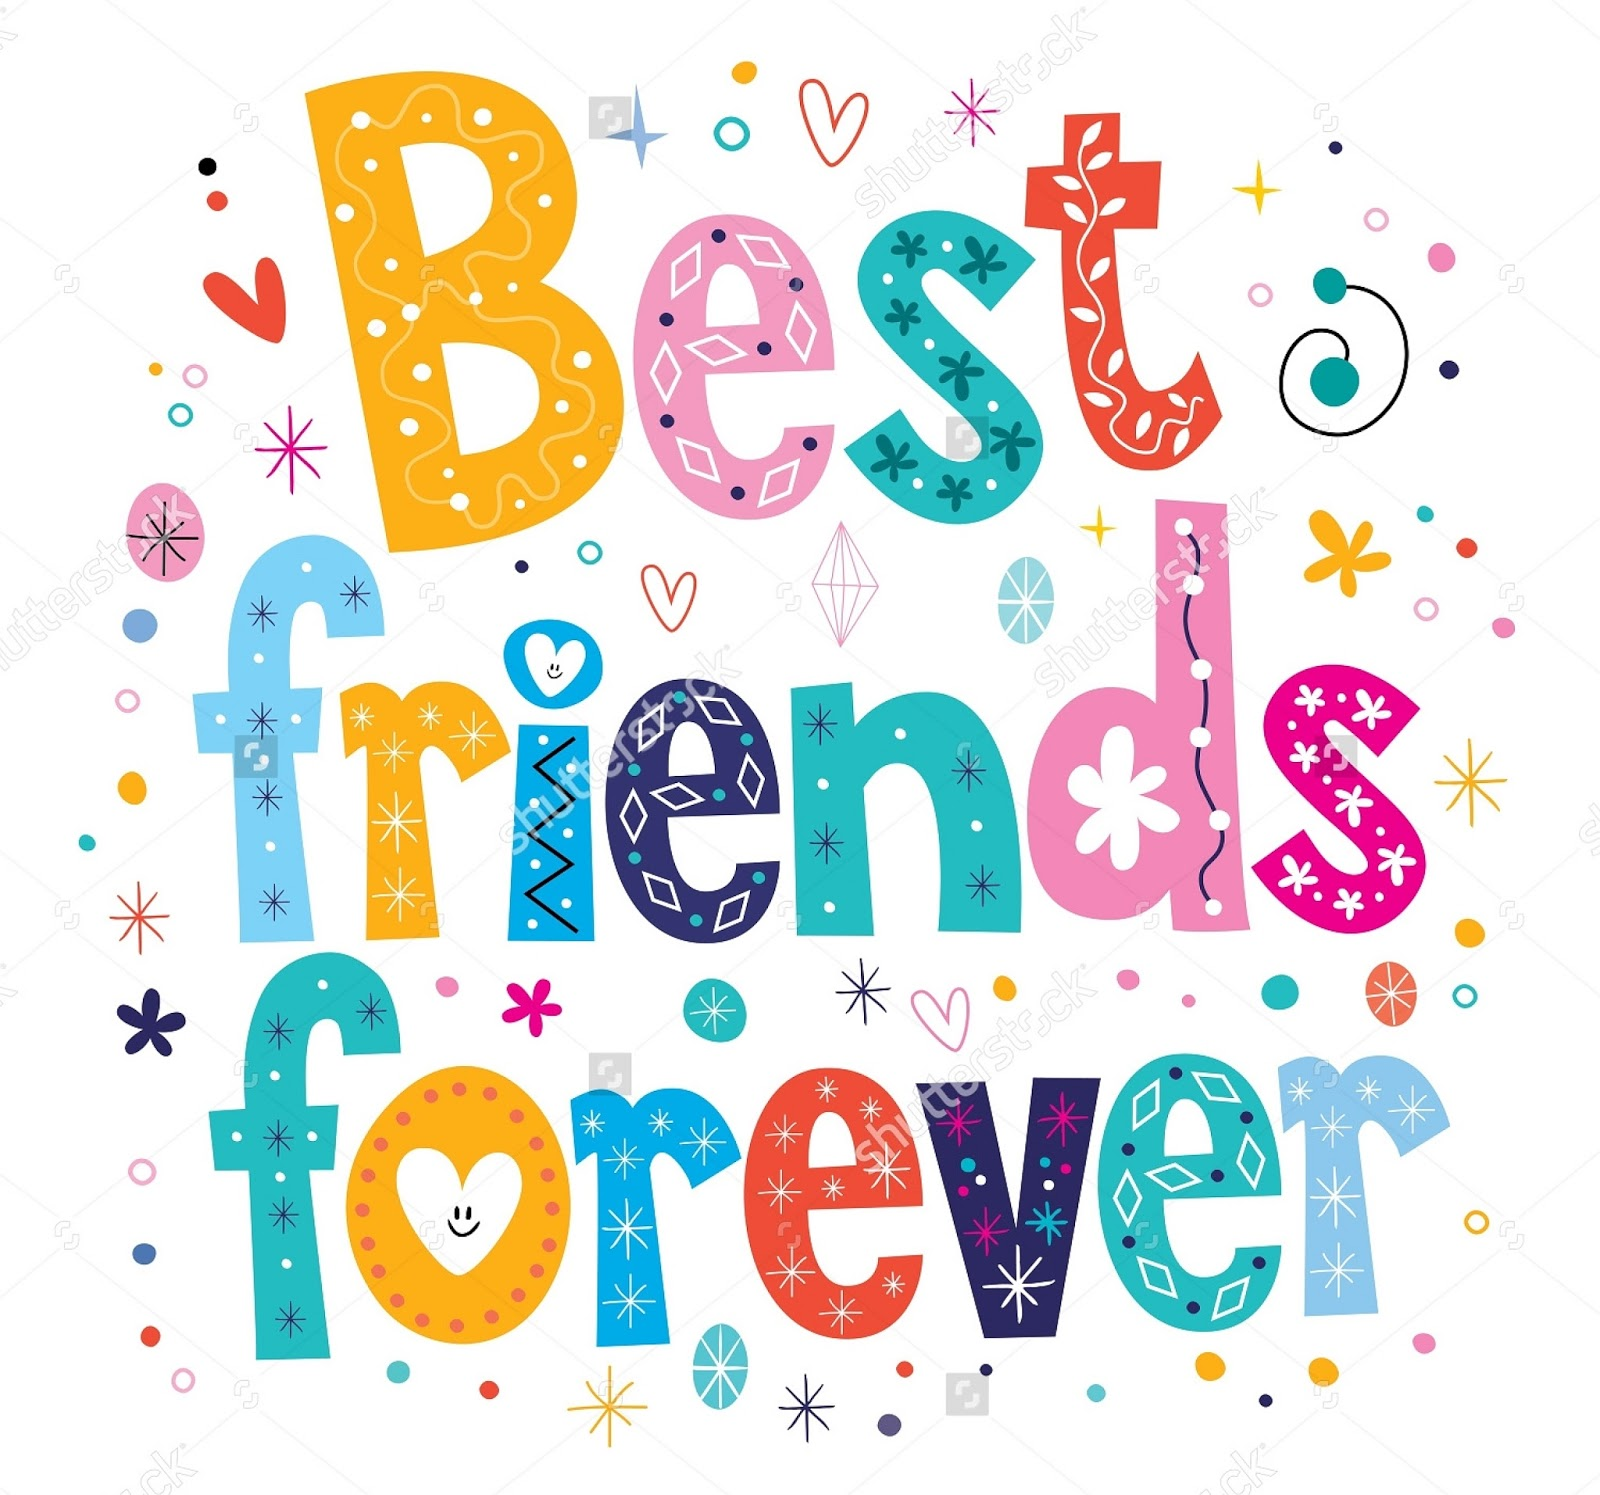 WALLPAPER BEST FRIENDS FOREVER Gambar Kartun Lucu Dan Wallpaper